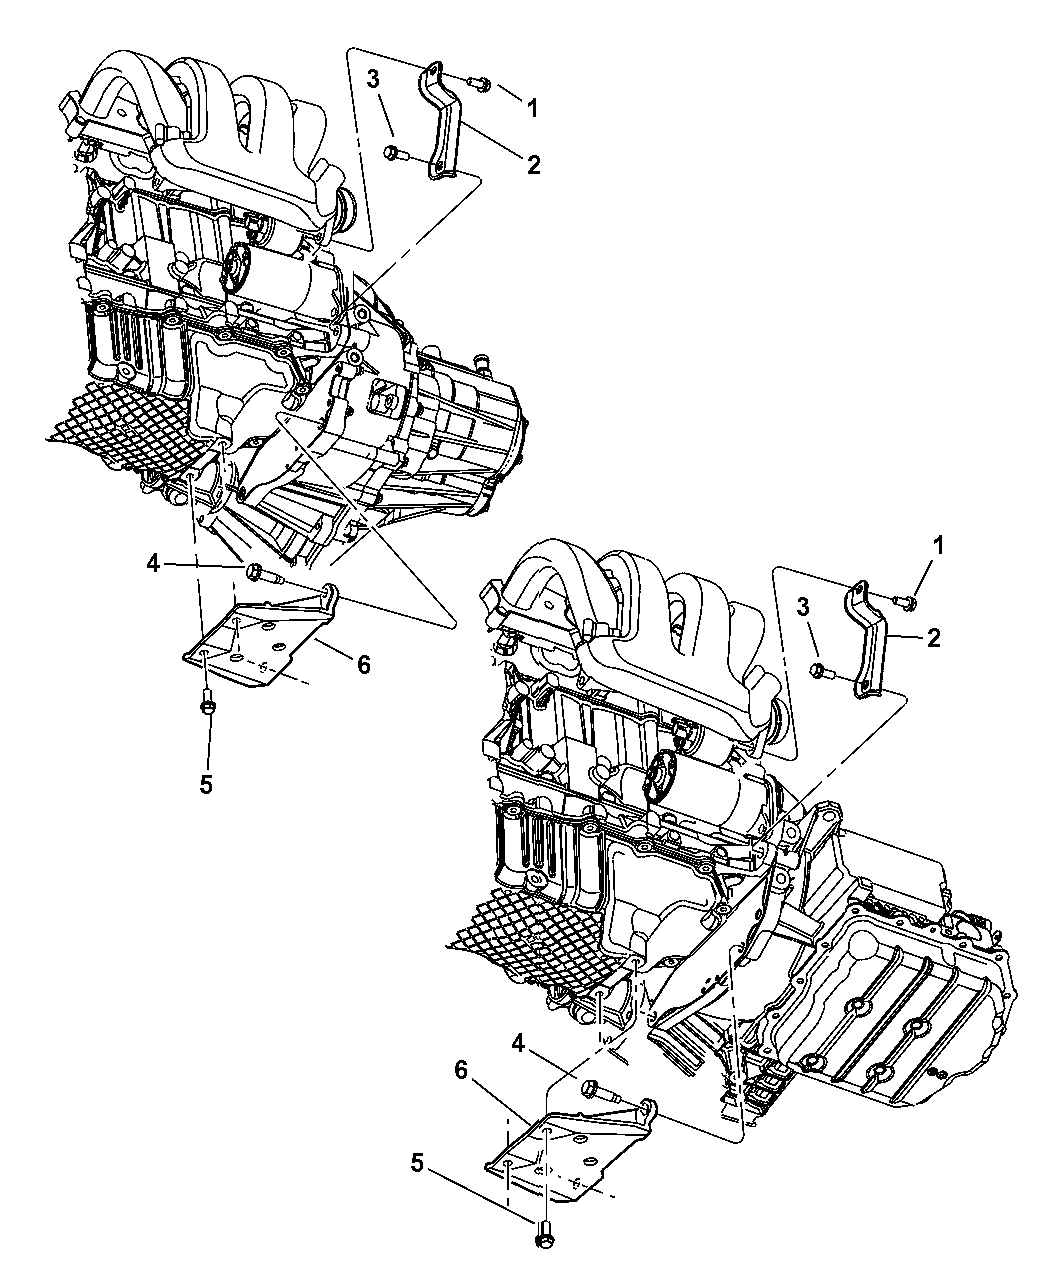 2004 dodge neon support - structural collar & intake manifold - thumbnail  1  2  engine mounting support